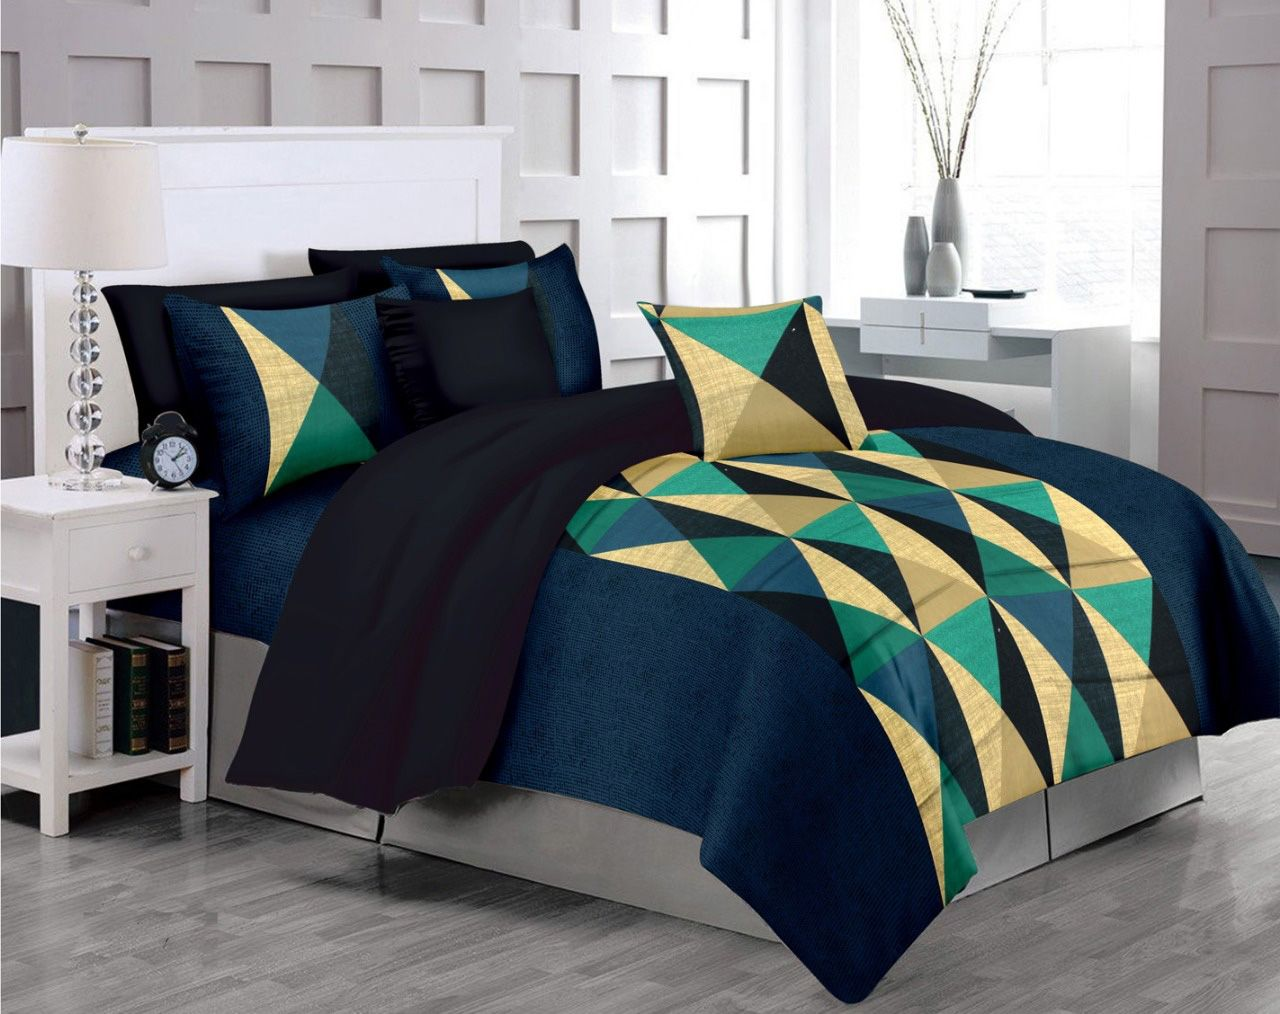 Wholesale Luxury Bedding Manufacturers In India Bed Luxury